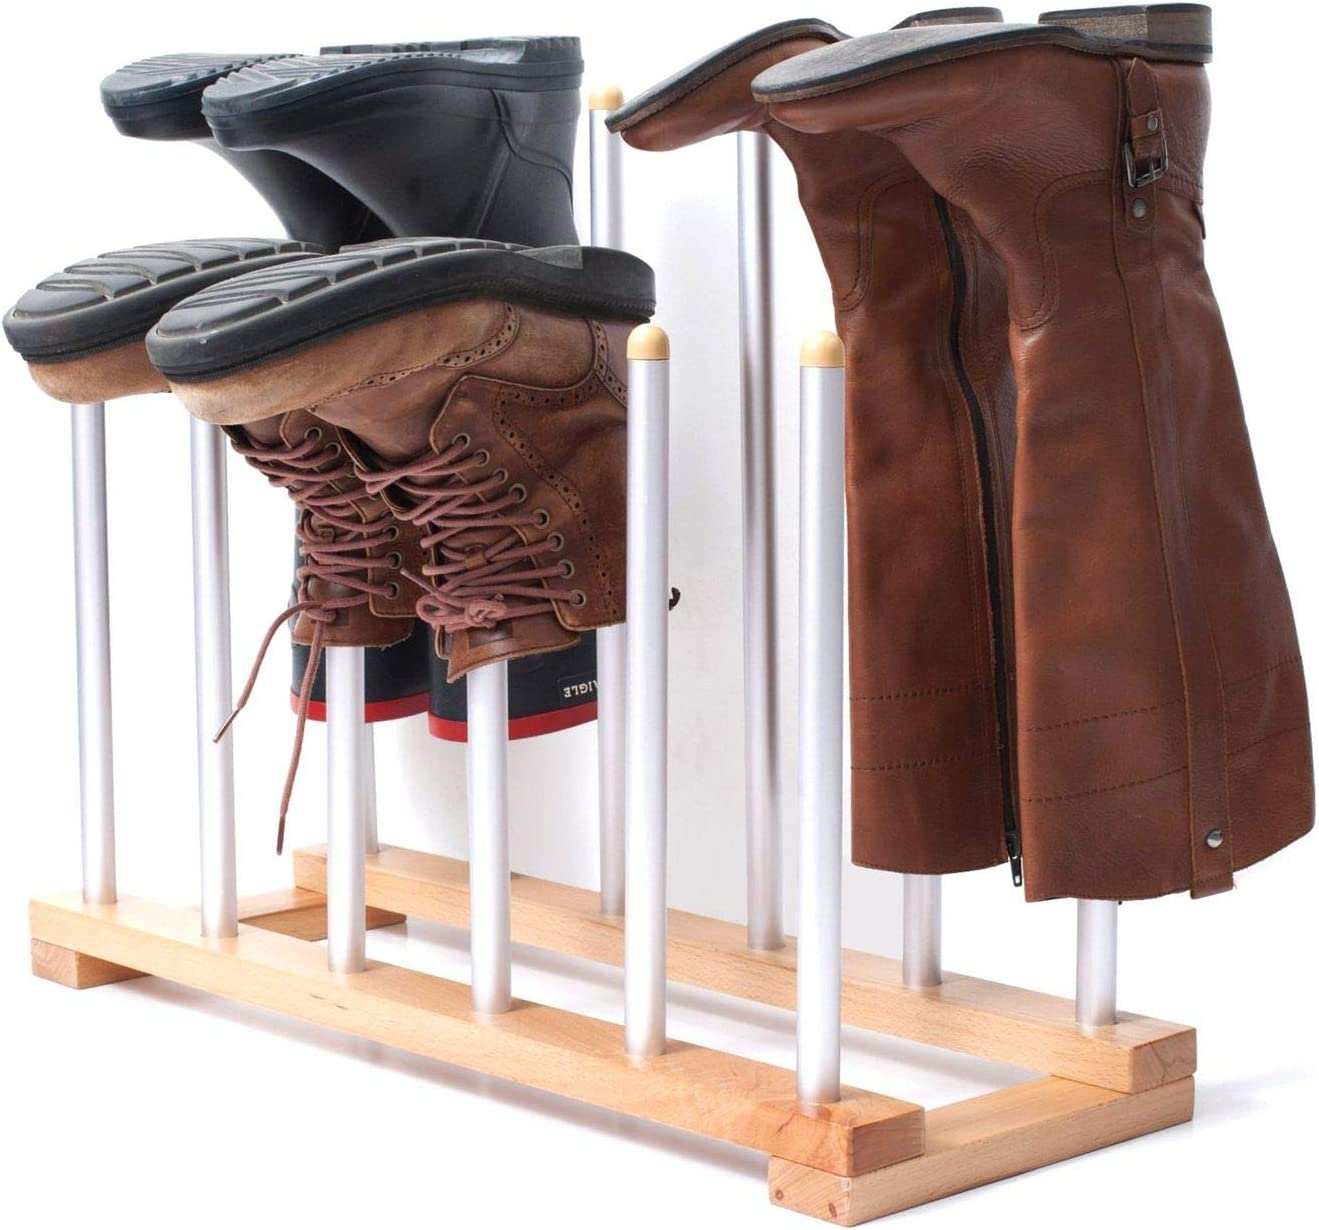 Amazon Com Innoka 6 Pairs Boot Rack Organizer Standing Wooden Aluminum Storage Holder Hanger For Riding Boots Rain Boots Shoes Easy To Assemble Space Saving Keep Boots In Shape Home Essentials Home